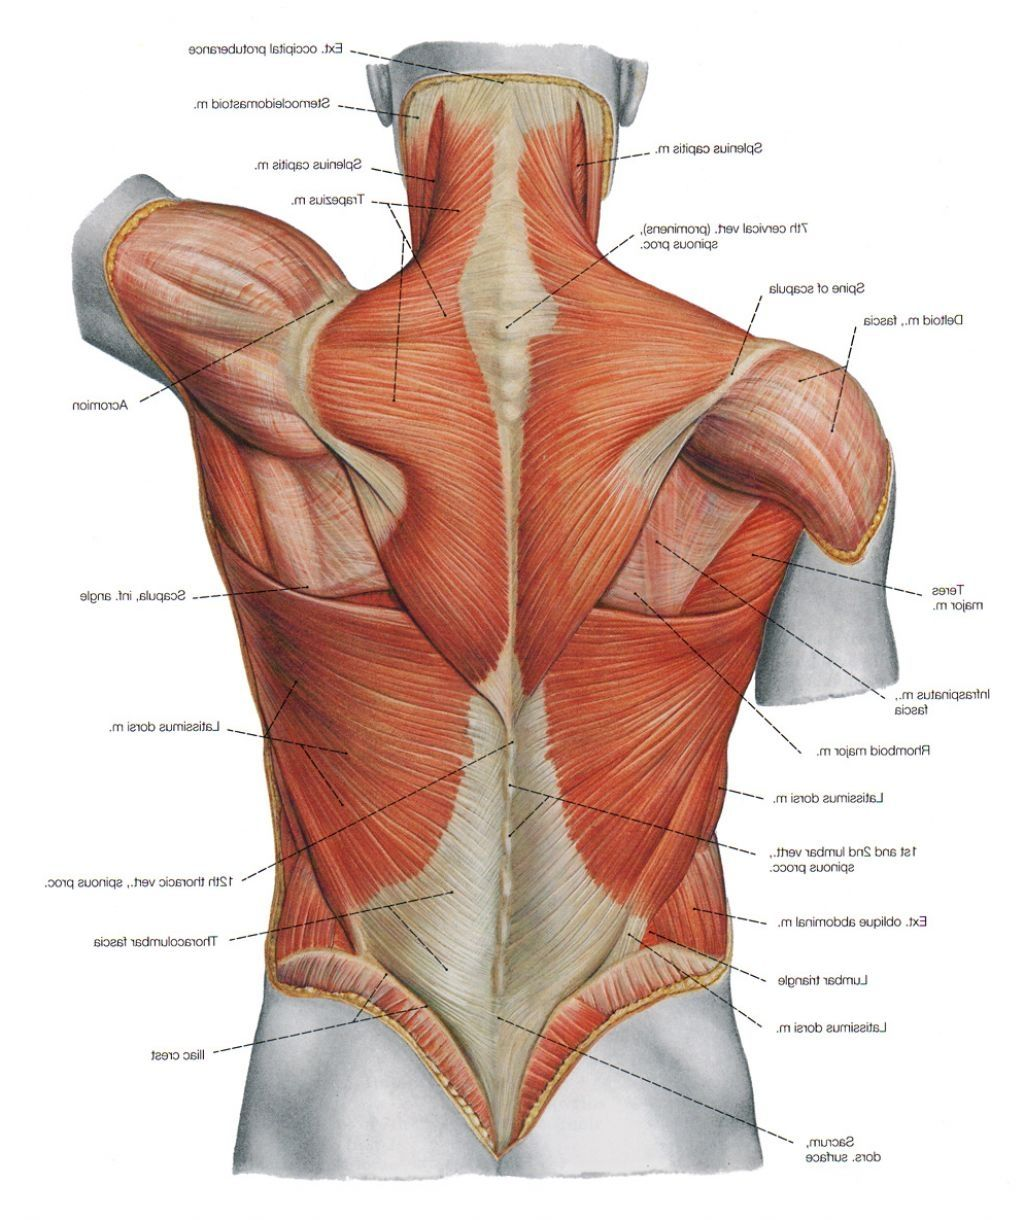 diagram back muscles upper back human anatomy diagram – anatomy, Human Body